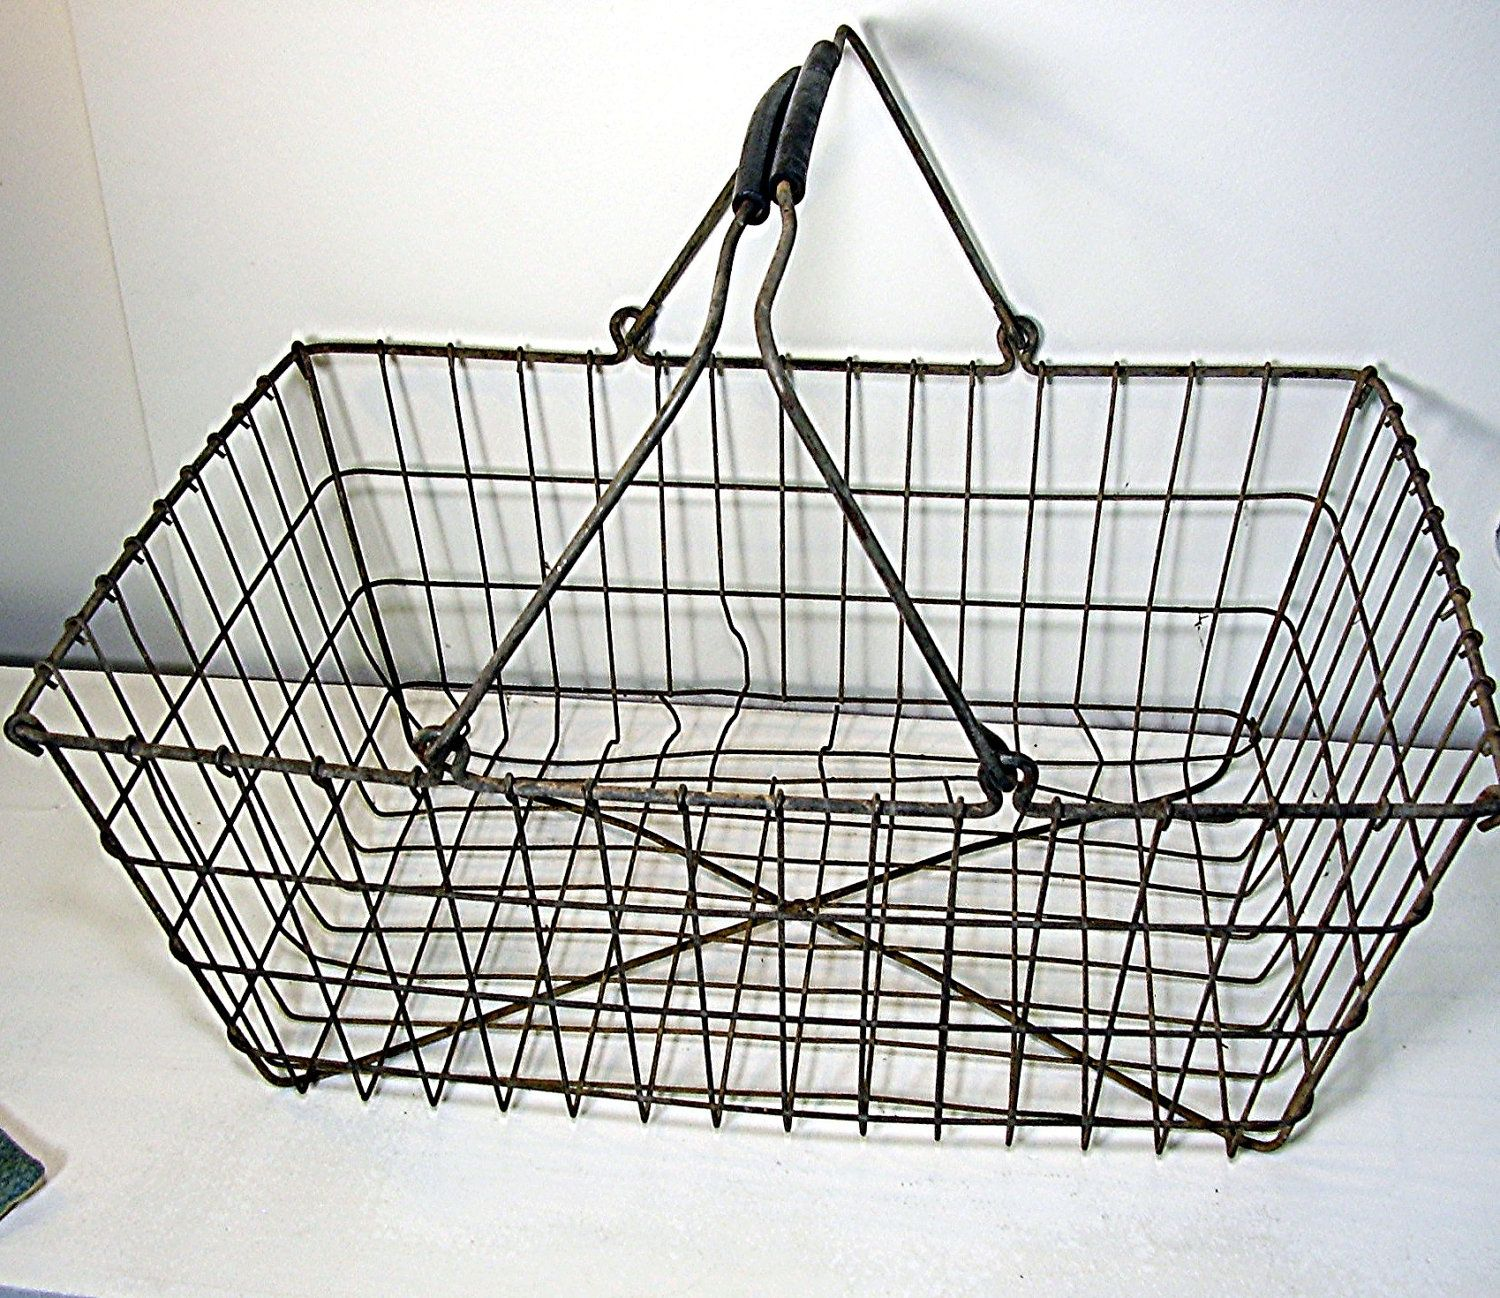 Vintage basket. I love these old wire baskets & wiry chairs too ...